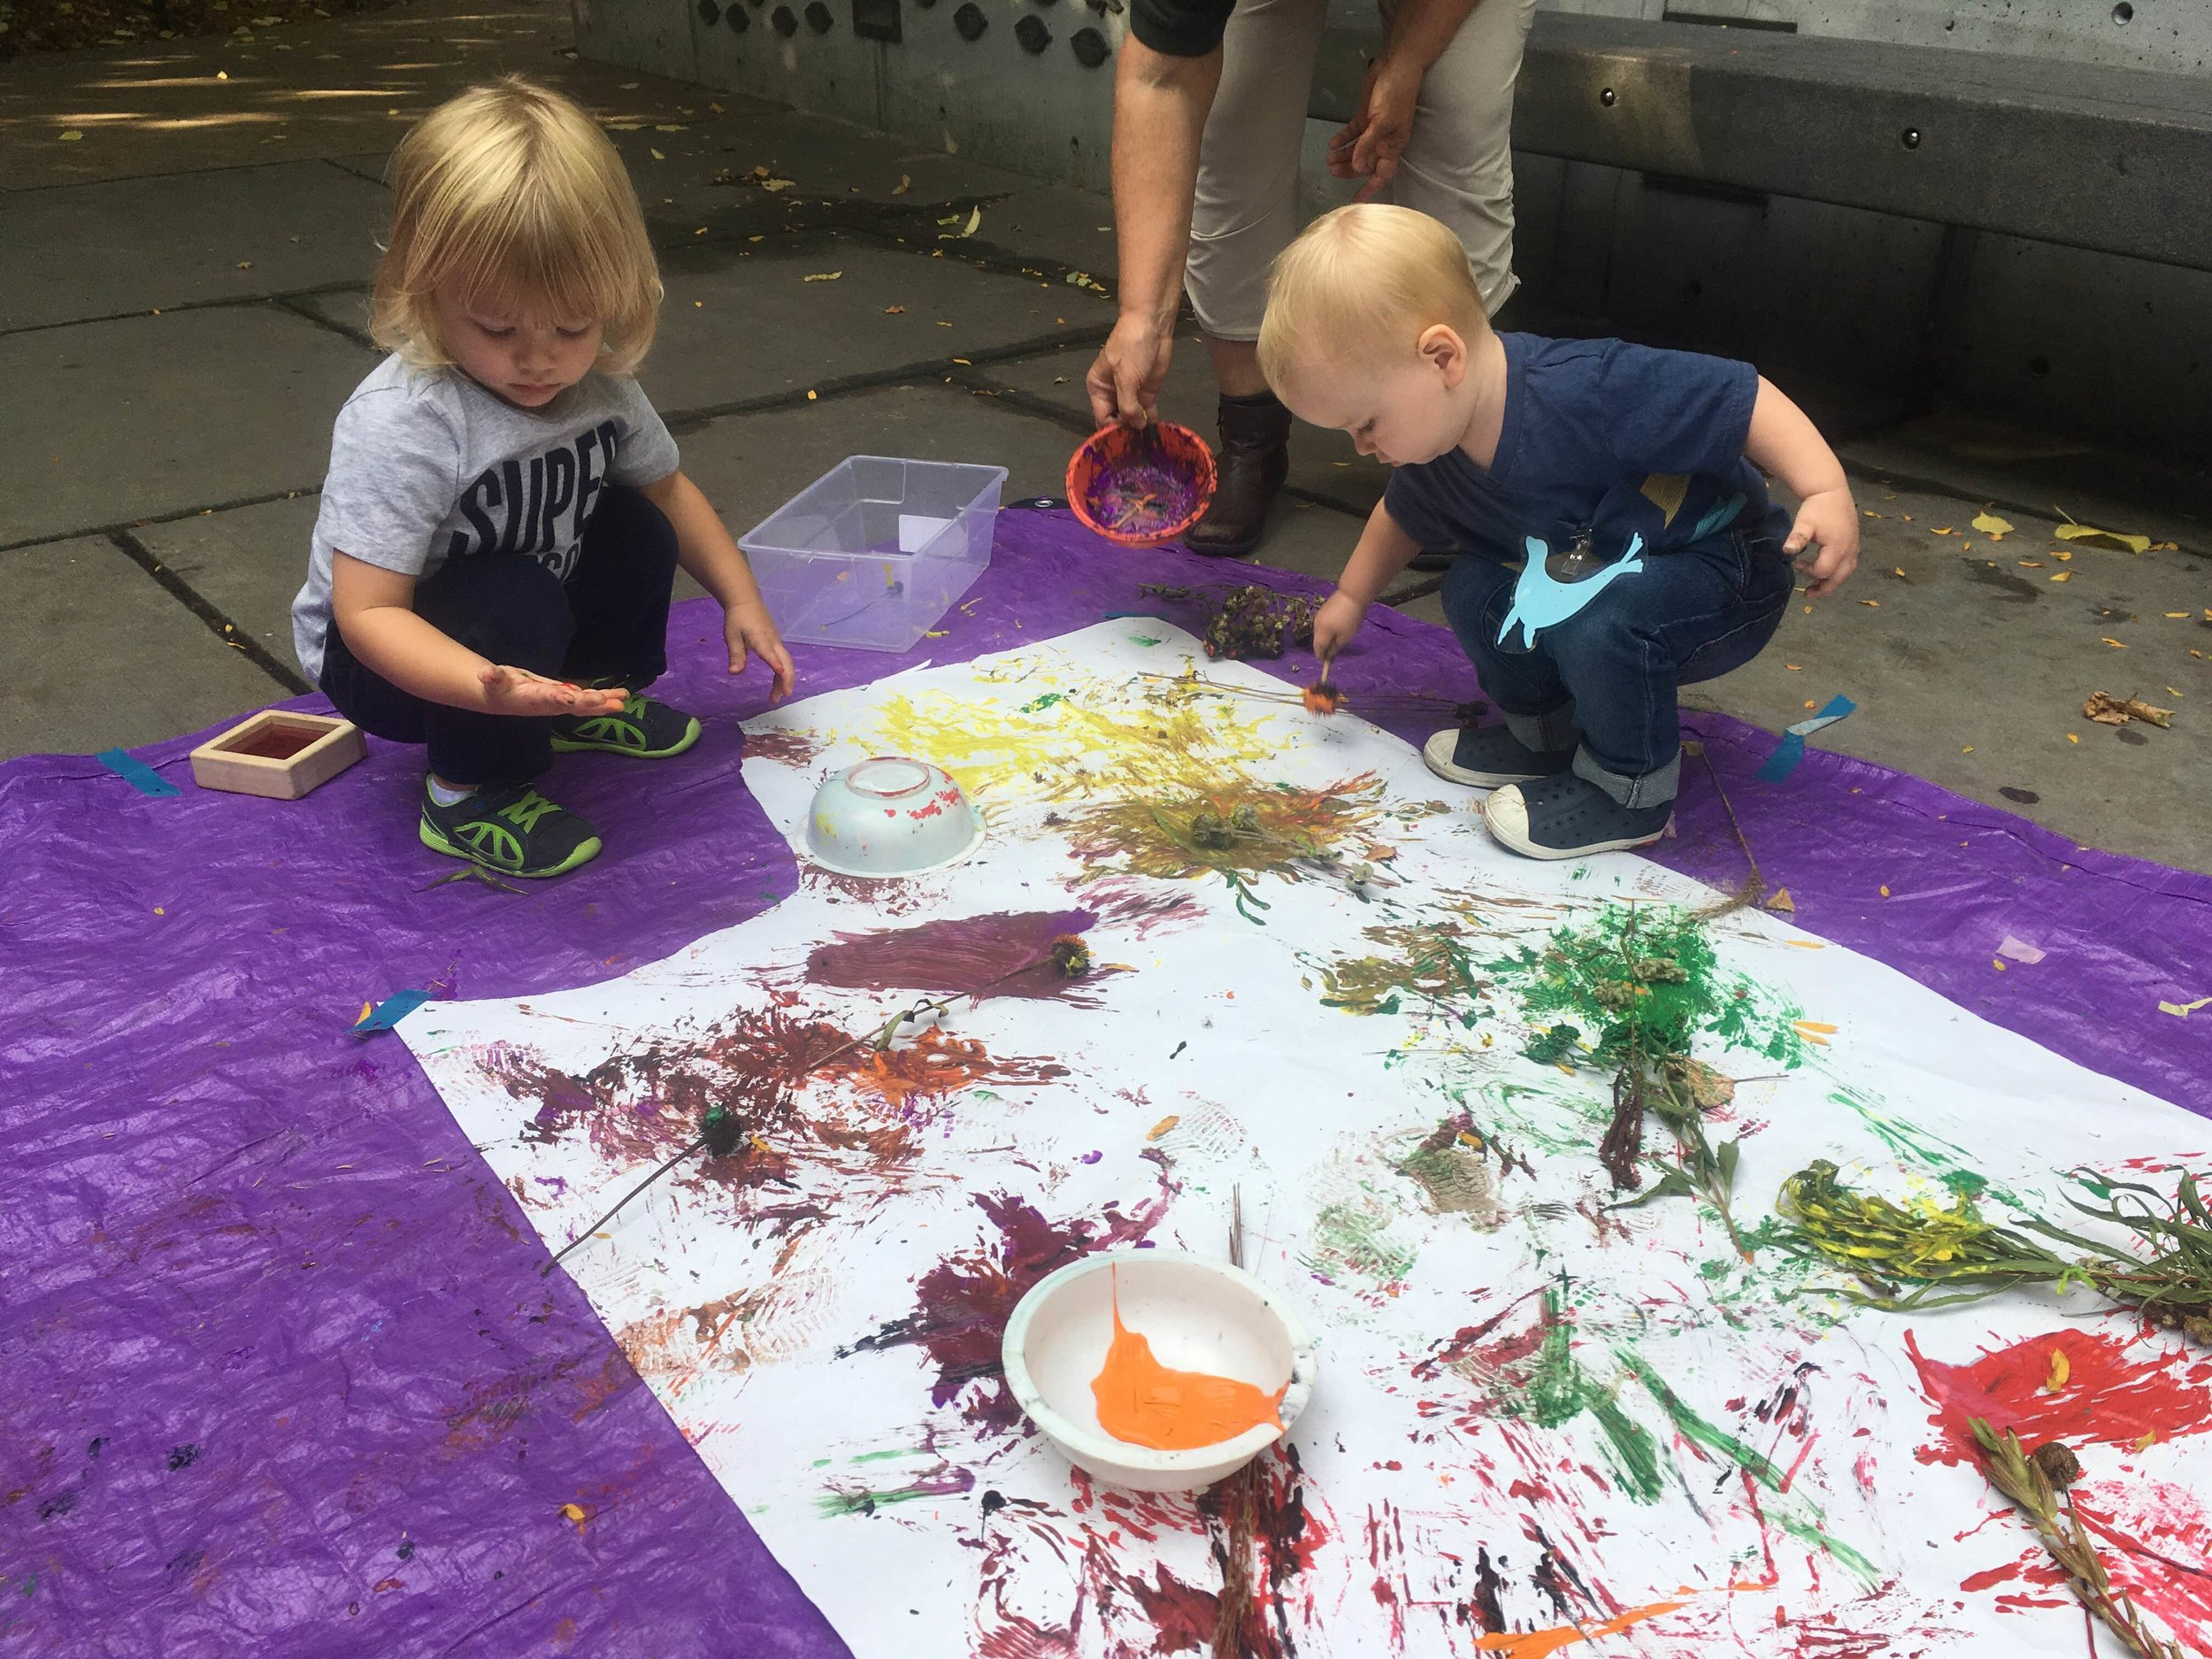 Painting with prairie flowers and grasses is another engaging, sensory activity using plants!